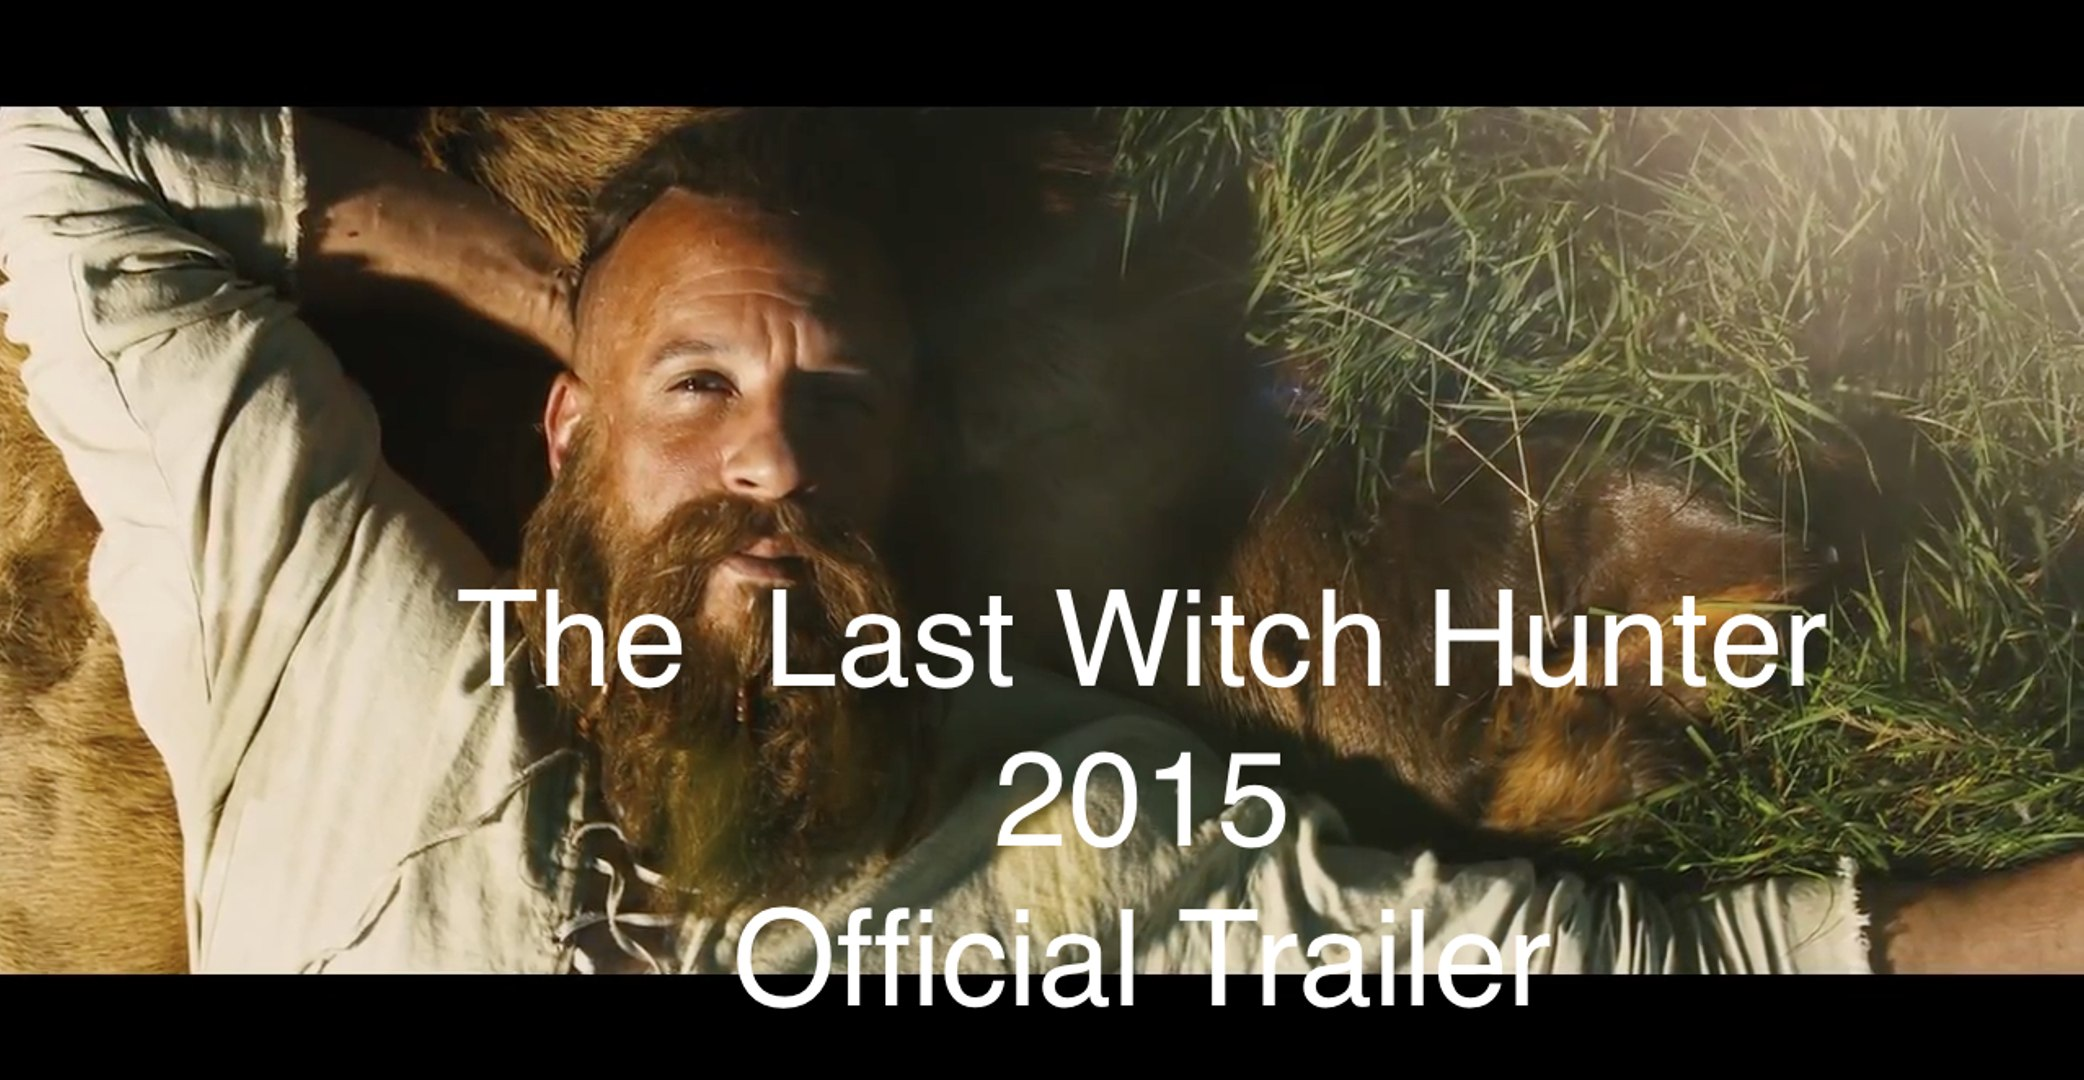 The Last Witch Hunter Official Trailer @1 (2015) - Vin Diesel, Michael Caine Fantasy Action Movie